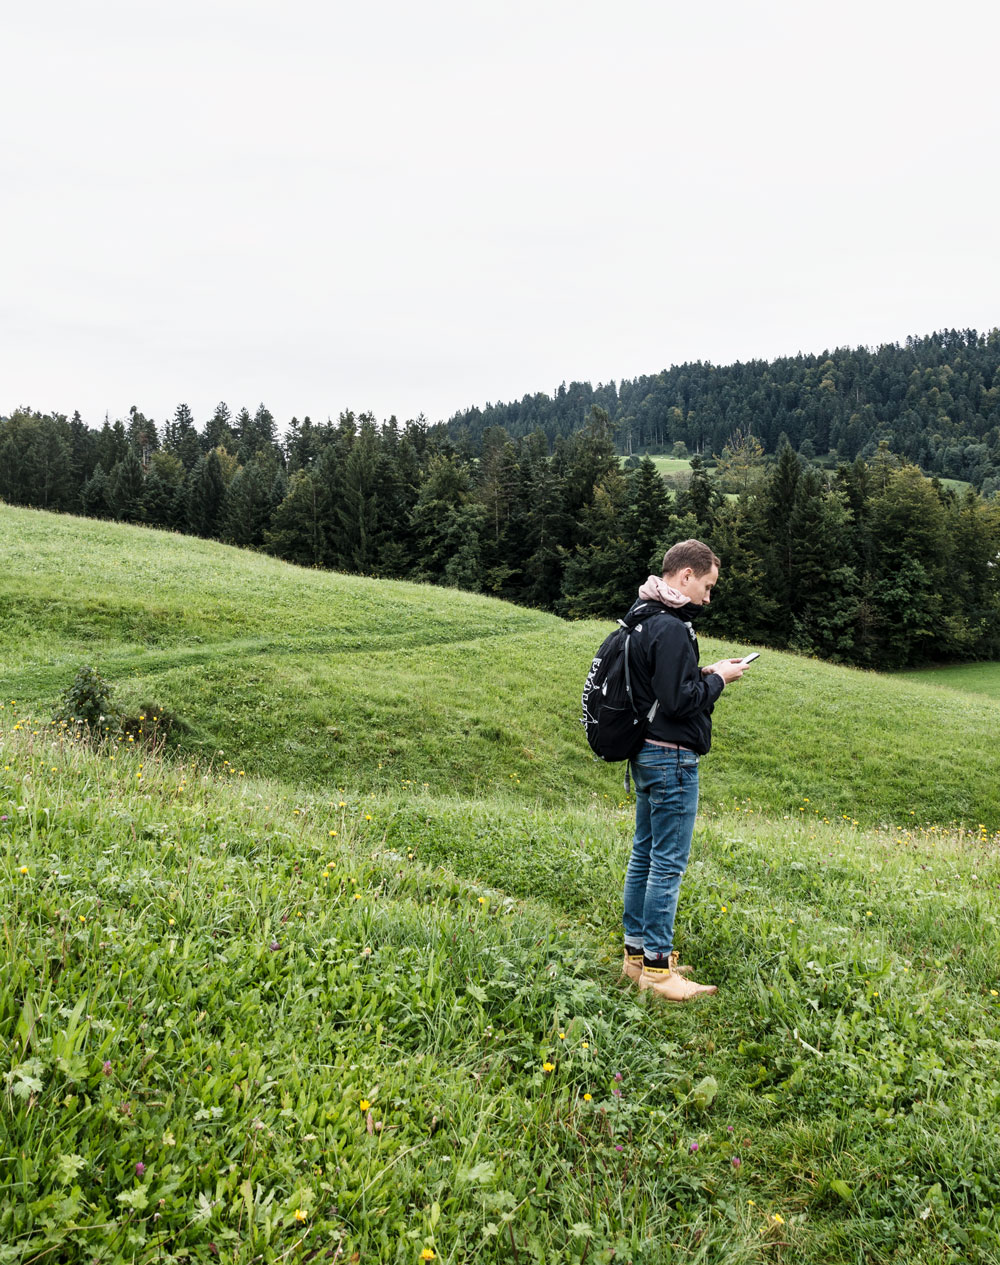 Walking the moors of Krumbach in Austria